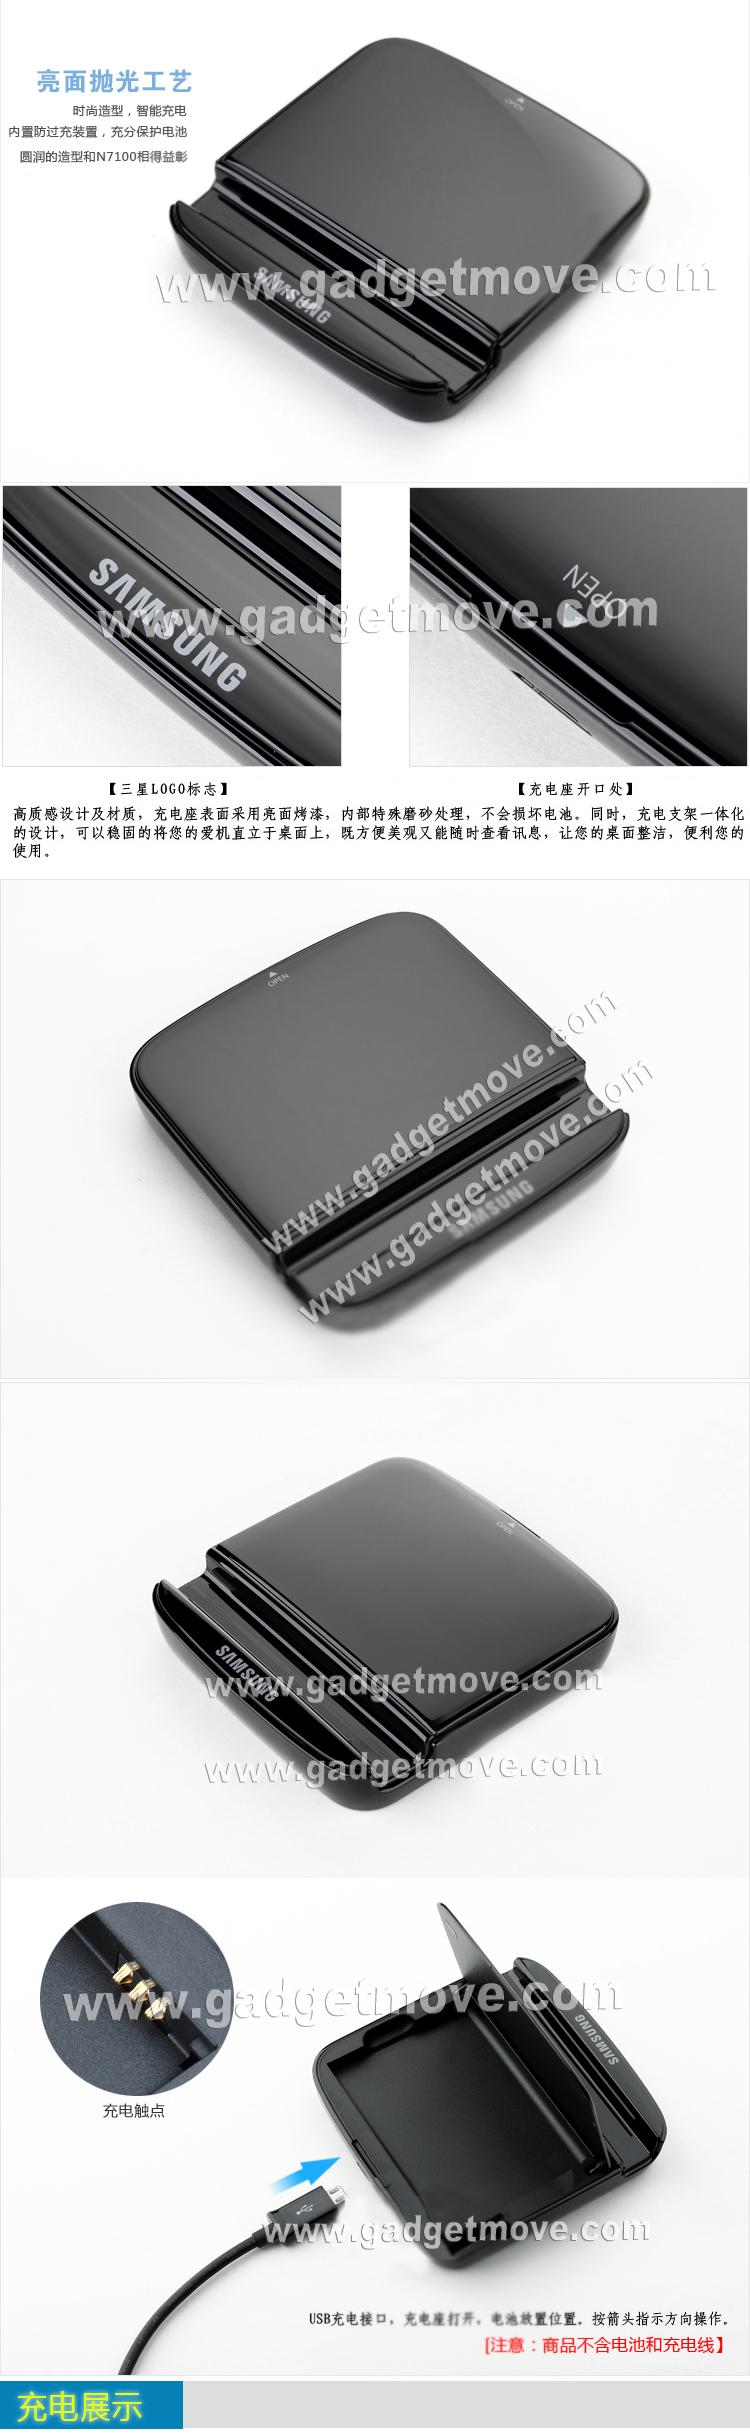 Multi-function External Battery Charger Dock Samsung Galaxy S4 i9500